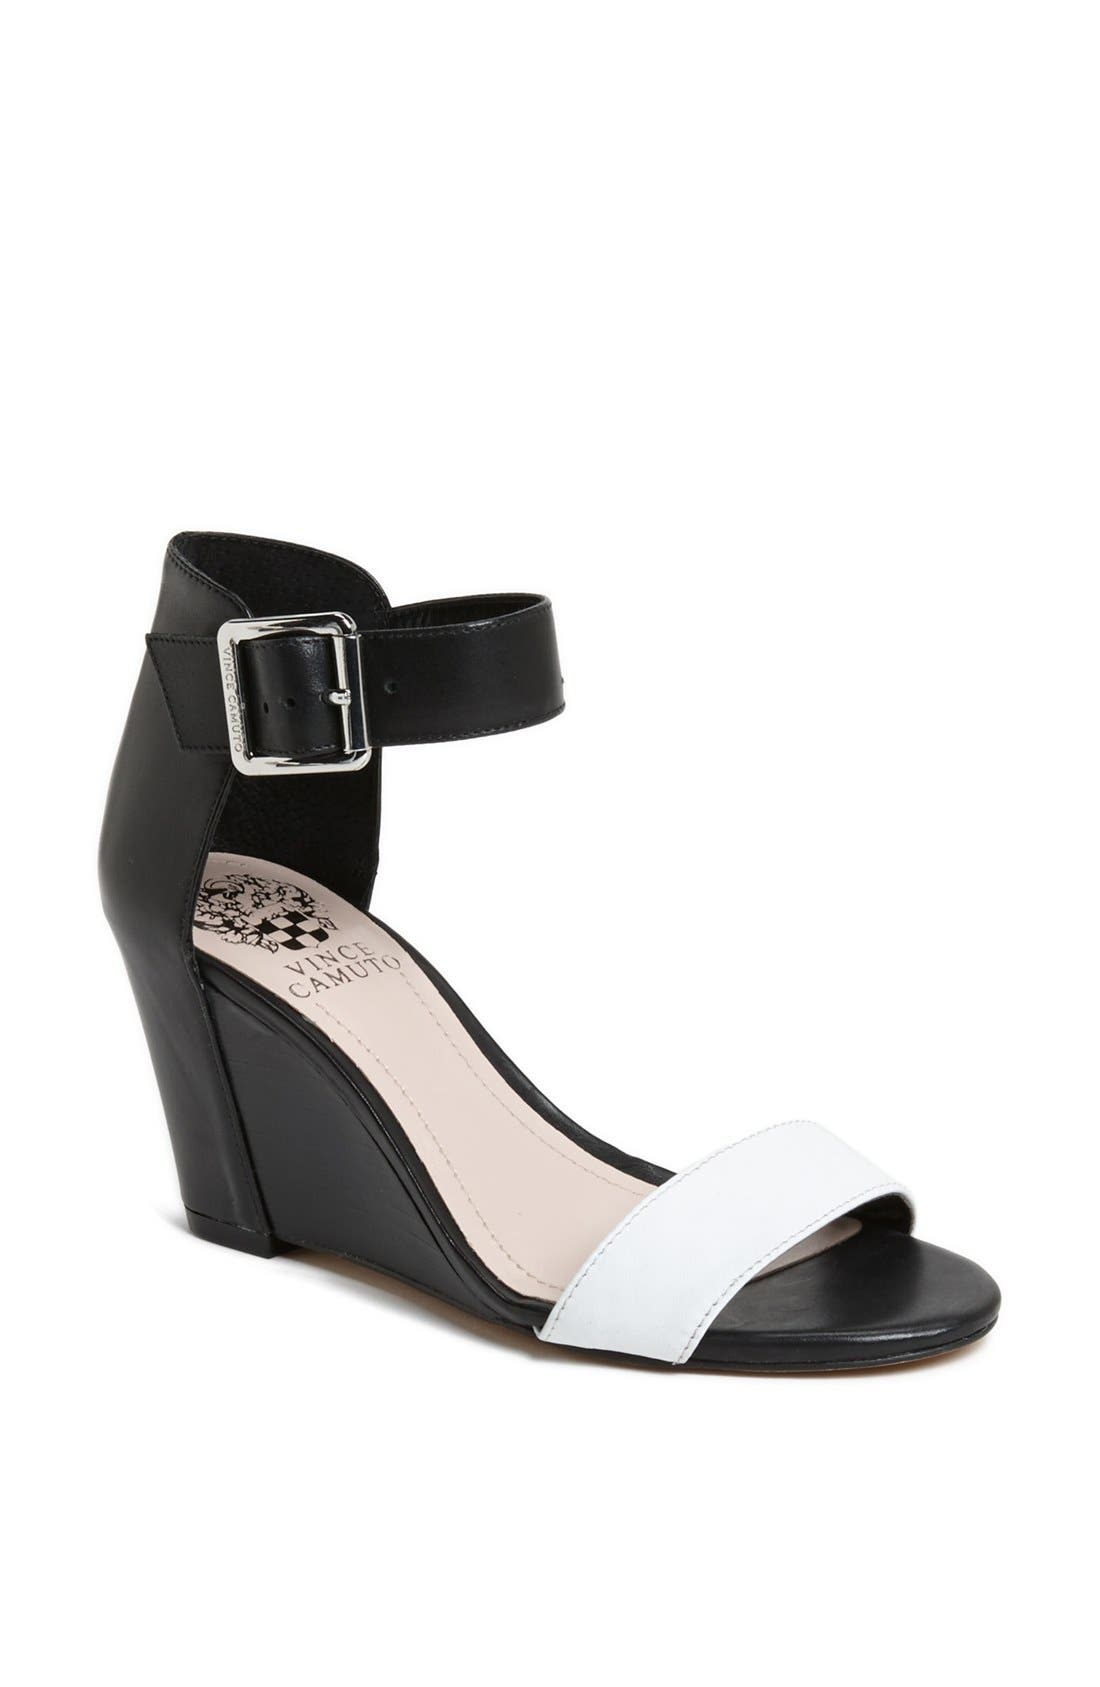 Alternate Image 1 Selected - Vince Camuto 'Luciah' Ankle Strap Wedge Sandal